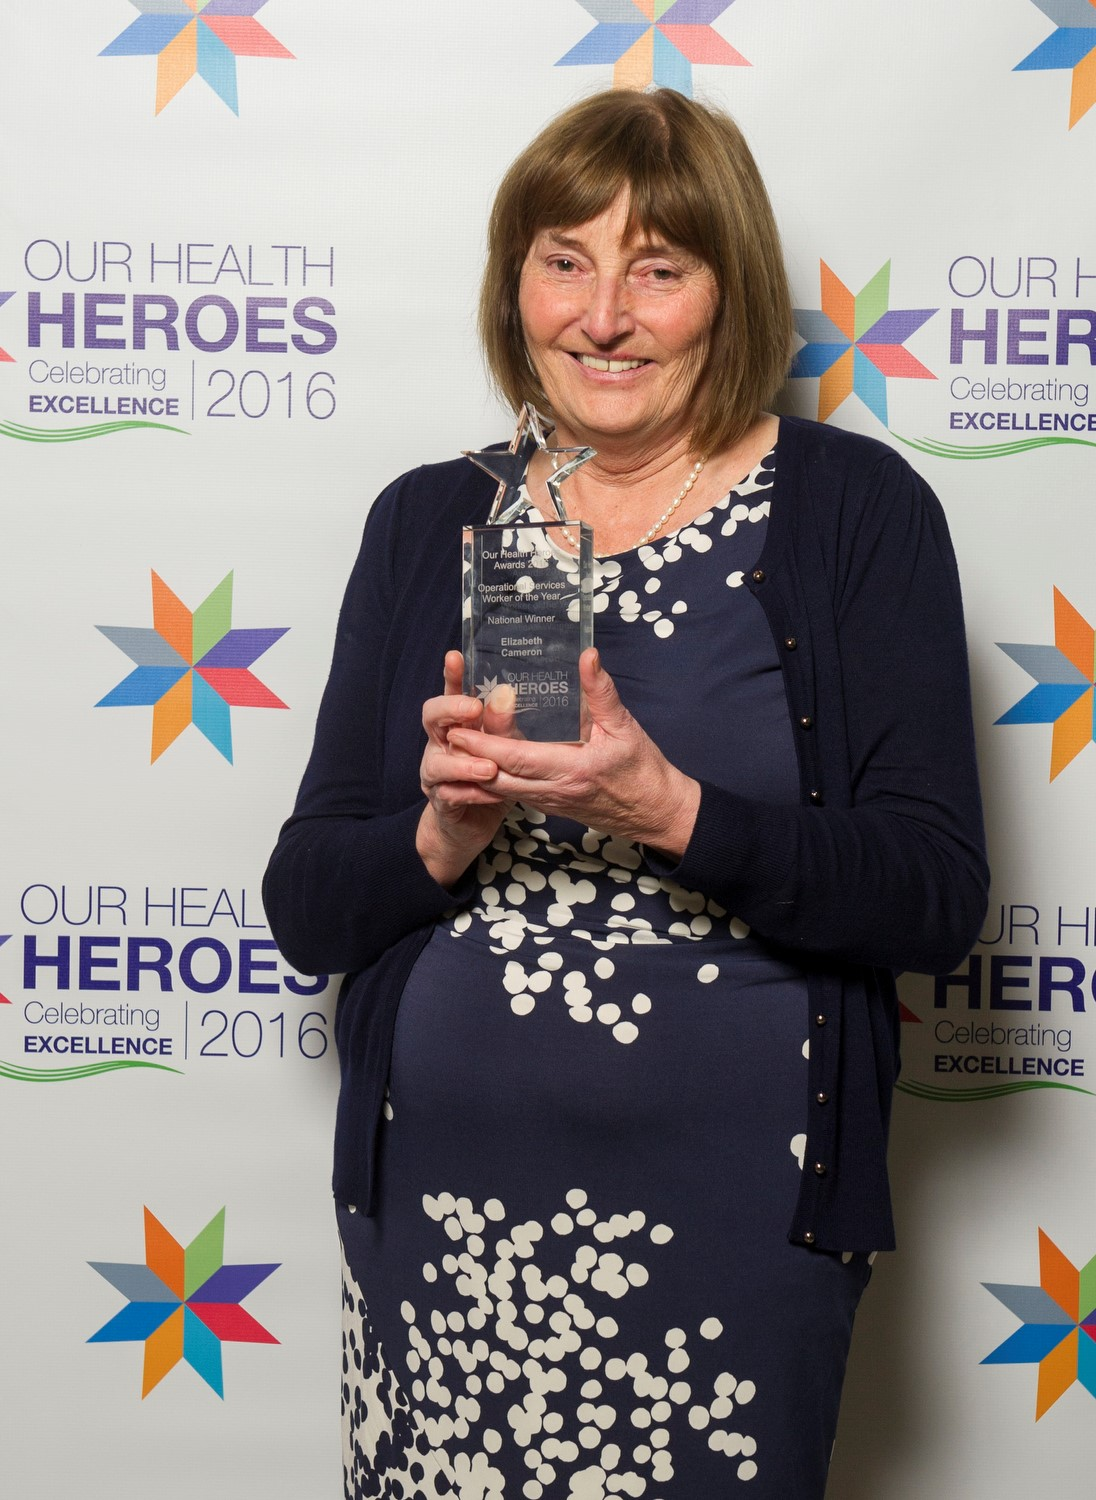 UK'S HEALTH HEROES REVEALED Elizabeth Cameron